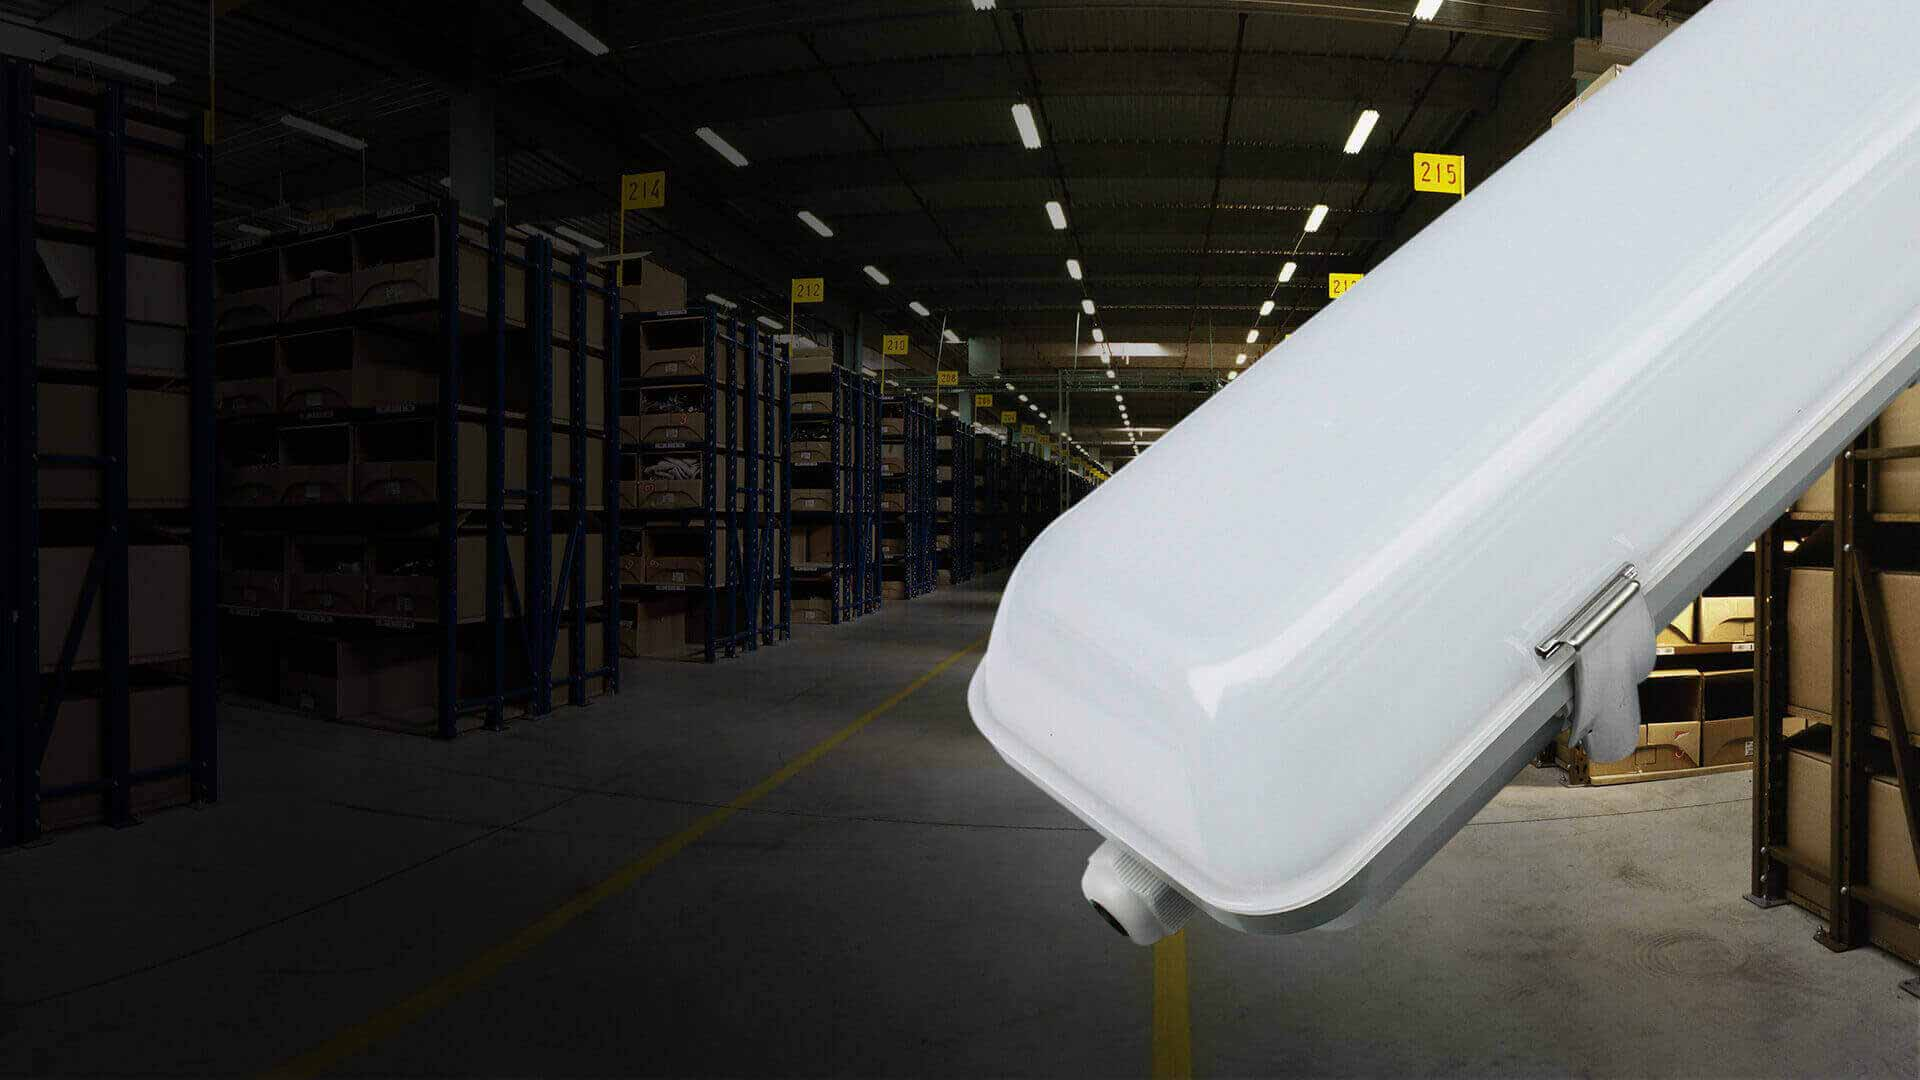 Commercial And Industrial LED Light Manufacturer Since